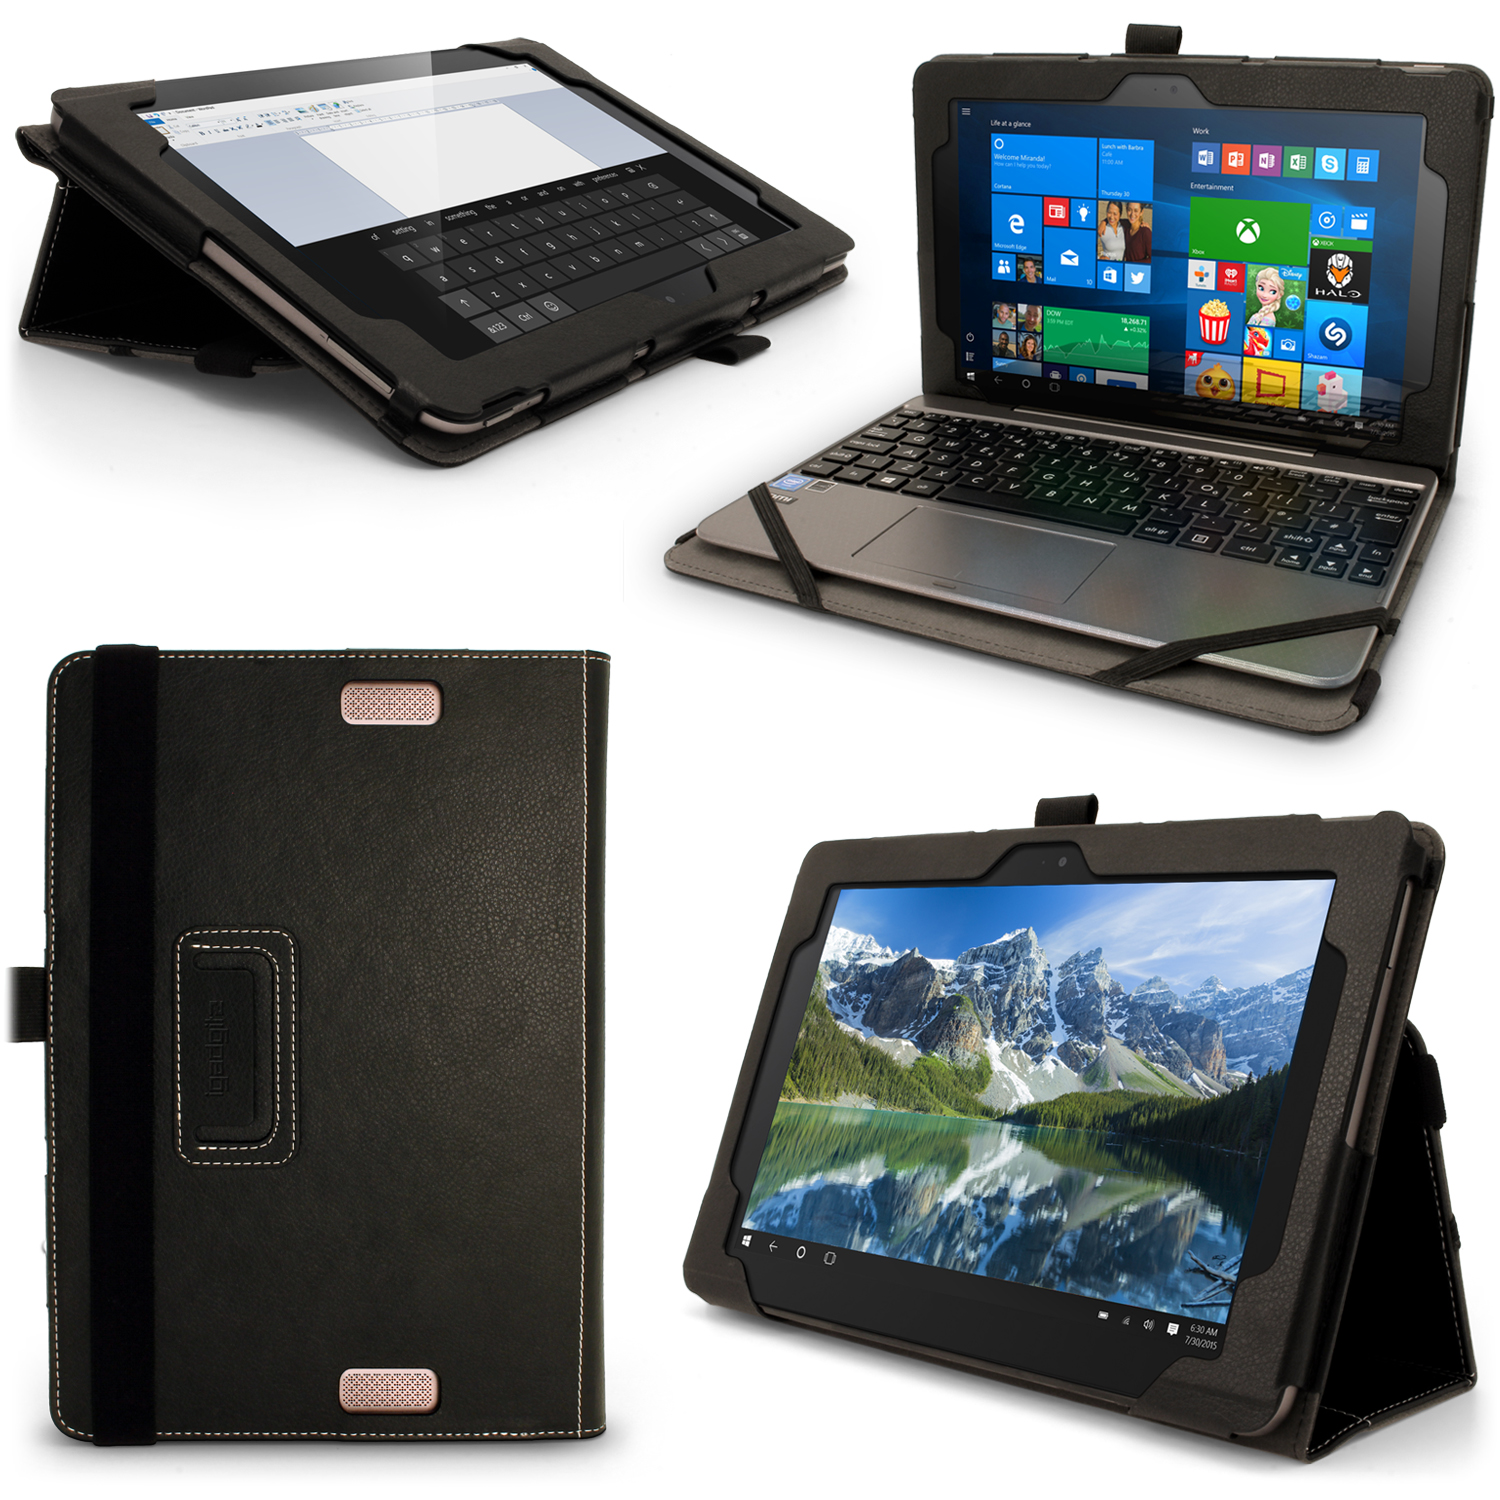 "iGadgitz PU Leather Case for Asus Transformer Book T101HA 10.1"" with Stand, Stylus Holder & Screen Protector"